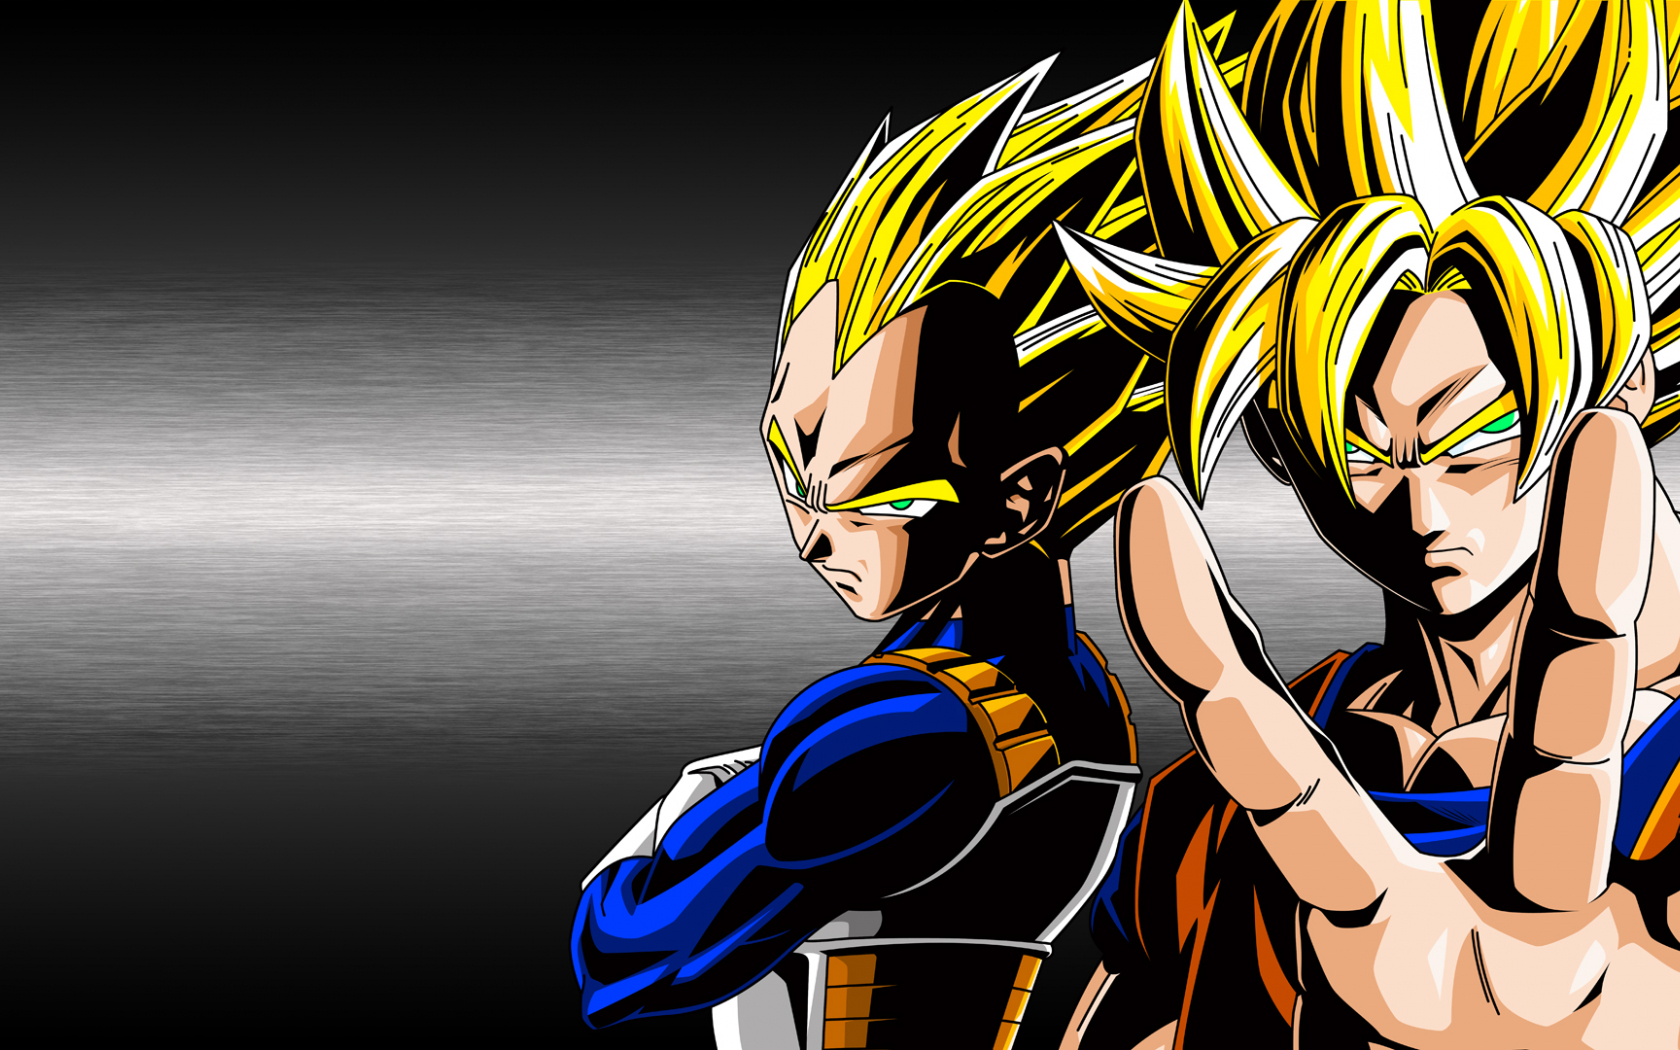 Free Download Vegeta Super Saiyan 3 Wallpaper 1920x1080 For Your